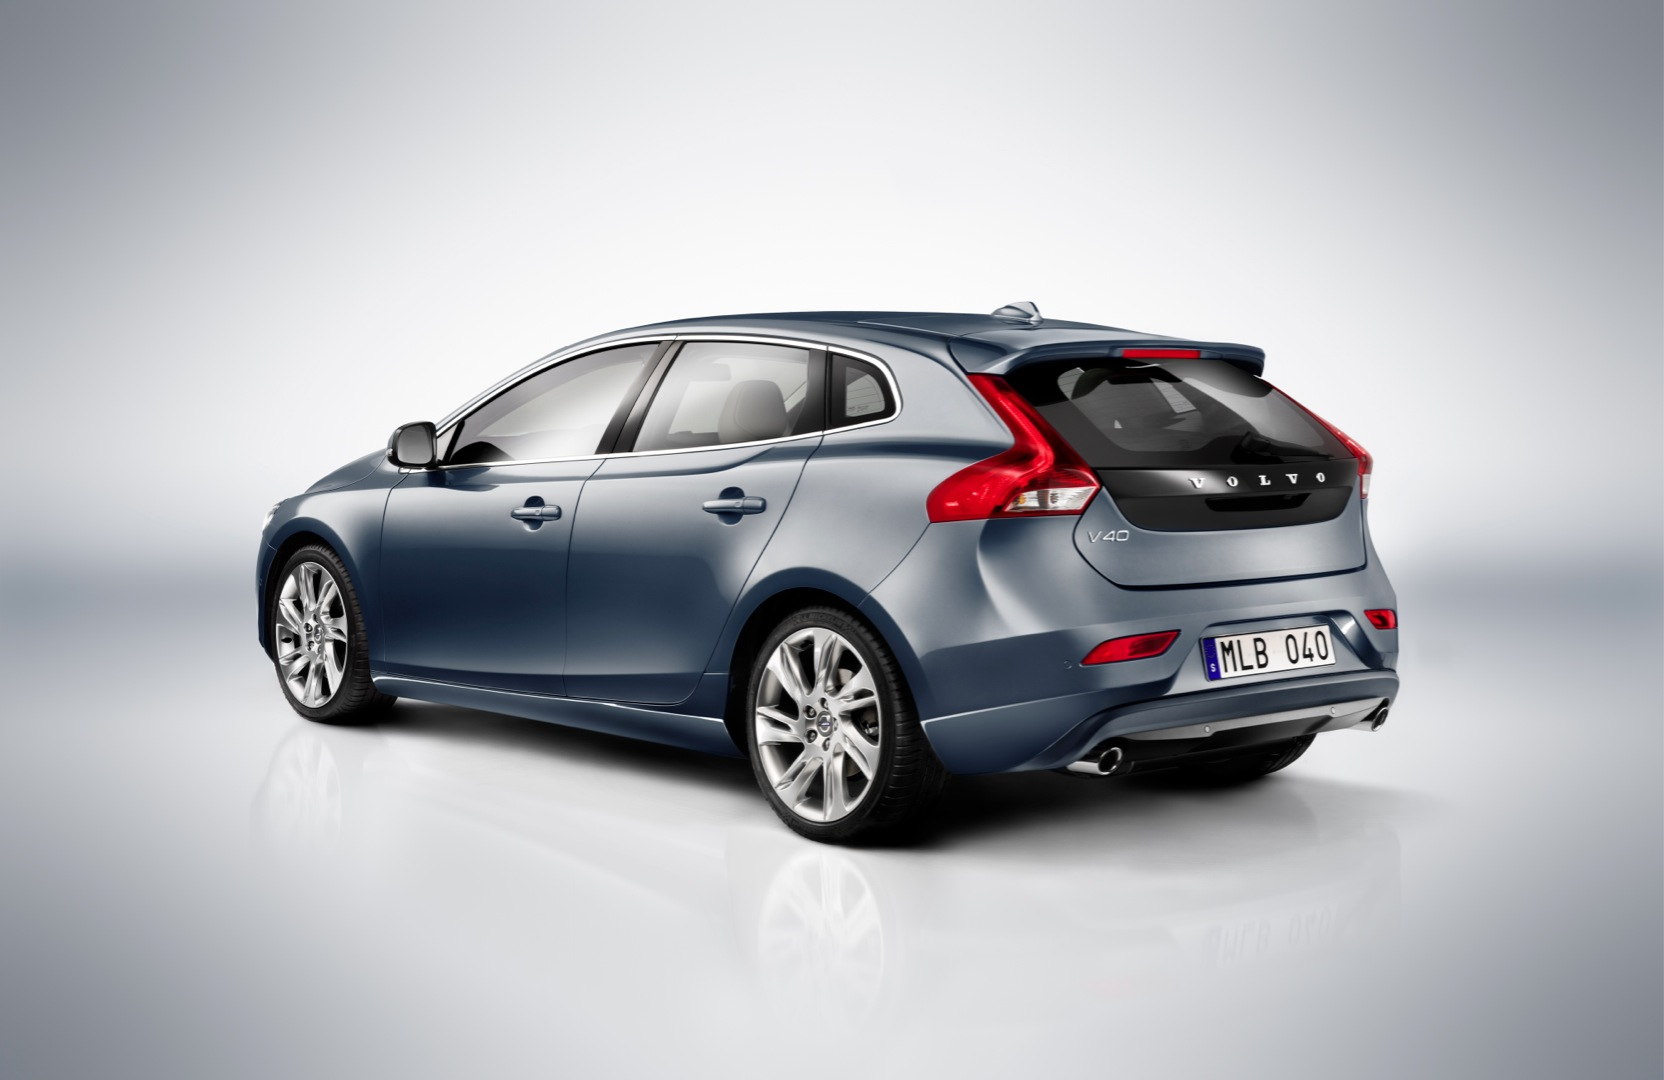 volvo v40 specs photos 2012 2013 2014 2015 2016. Black Bedroom Furniture Sets. Home Design Ideas